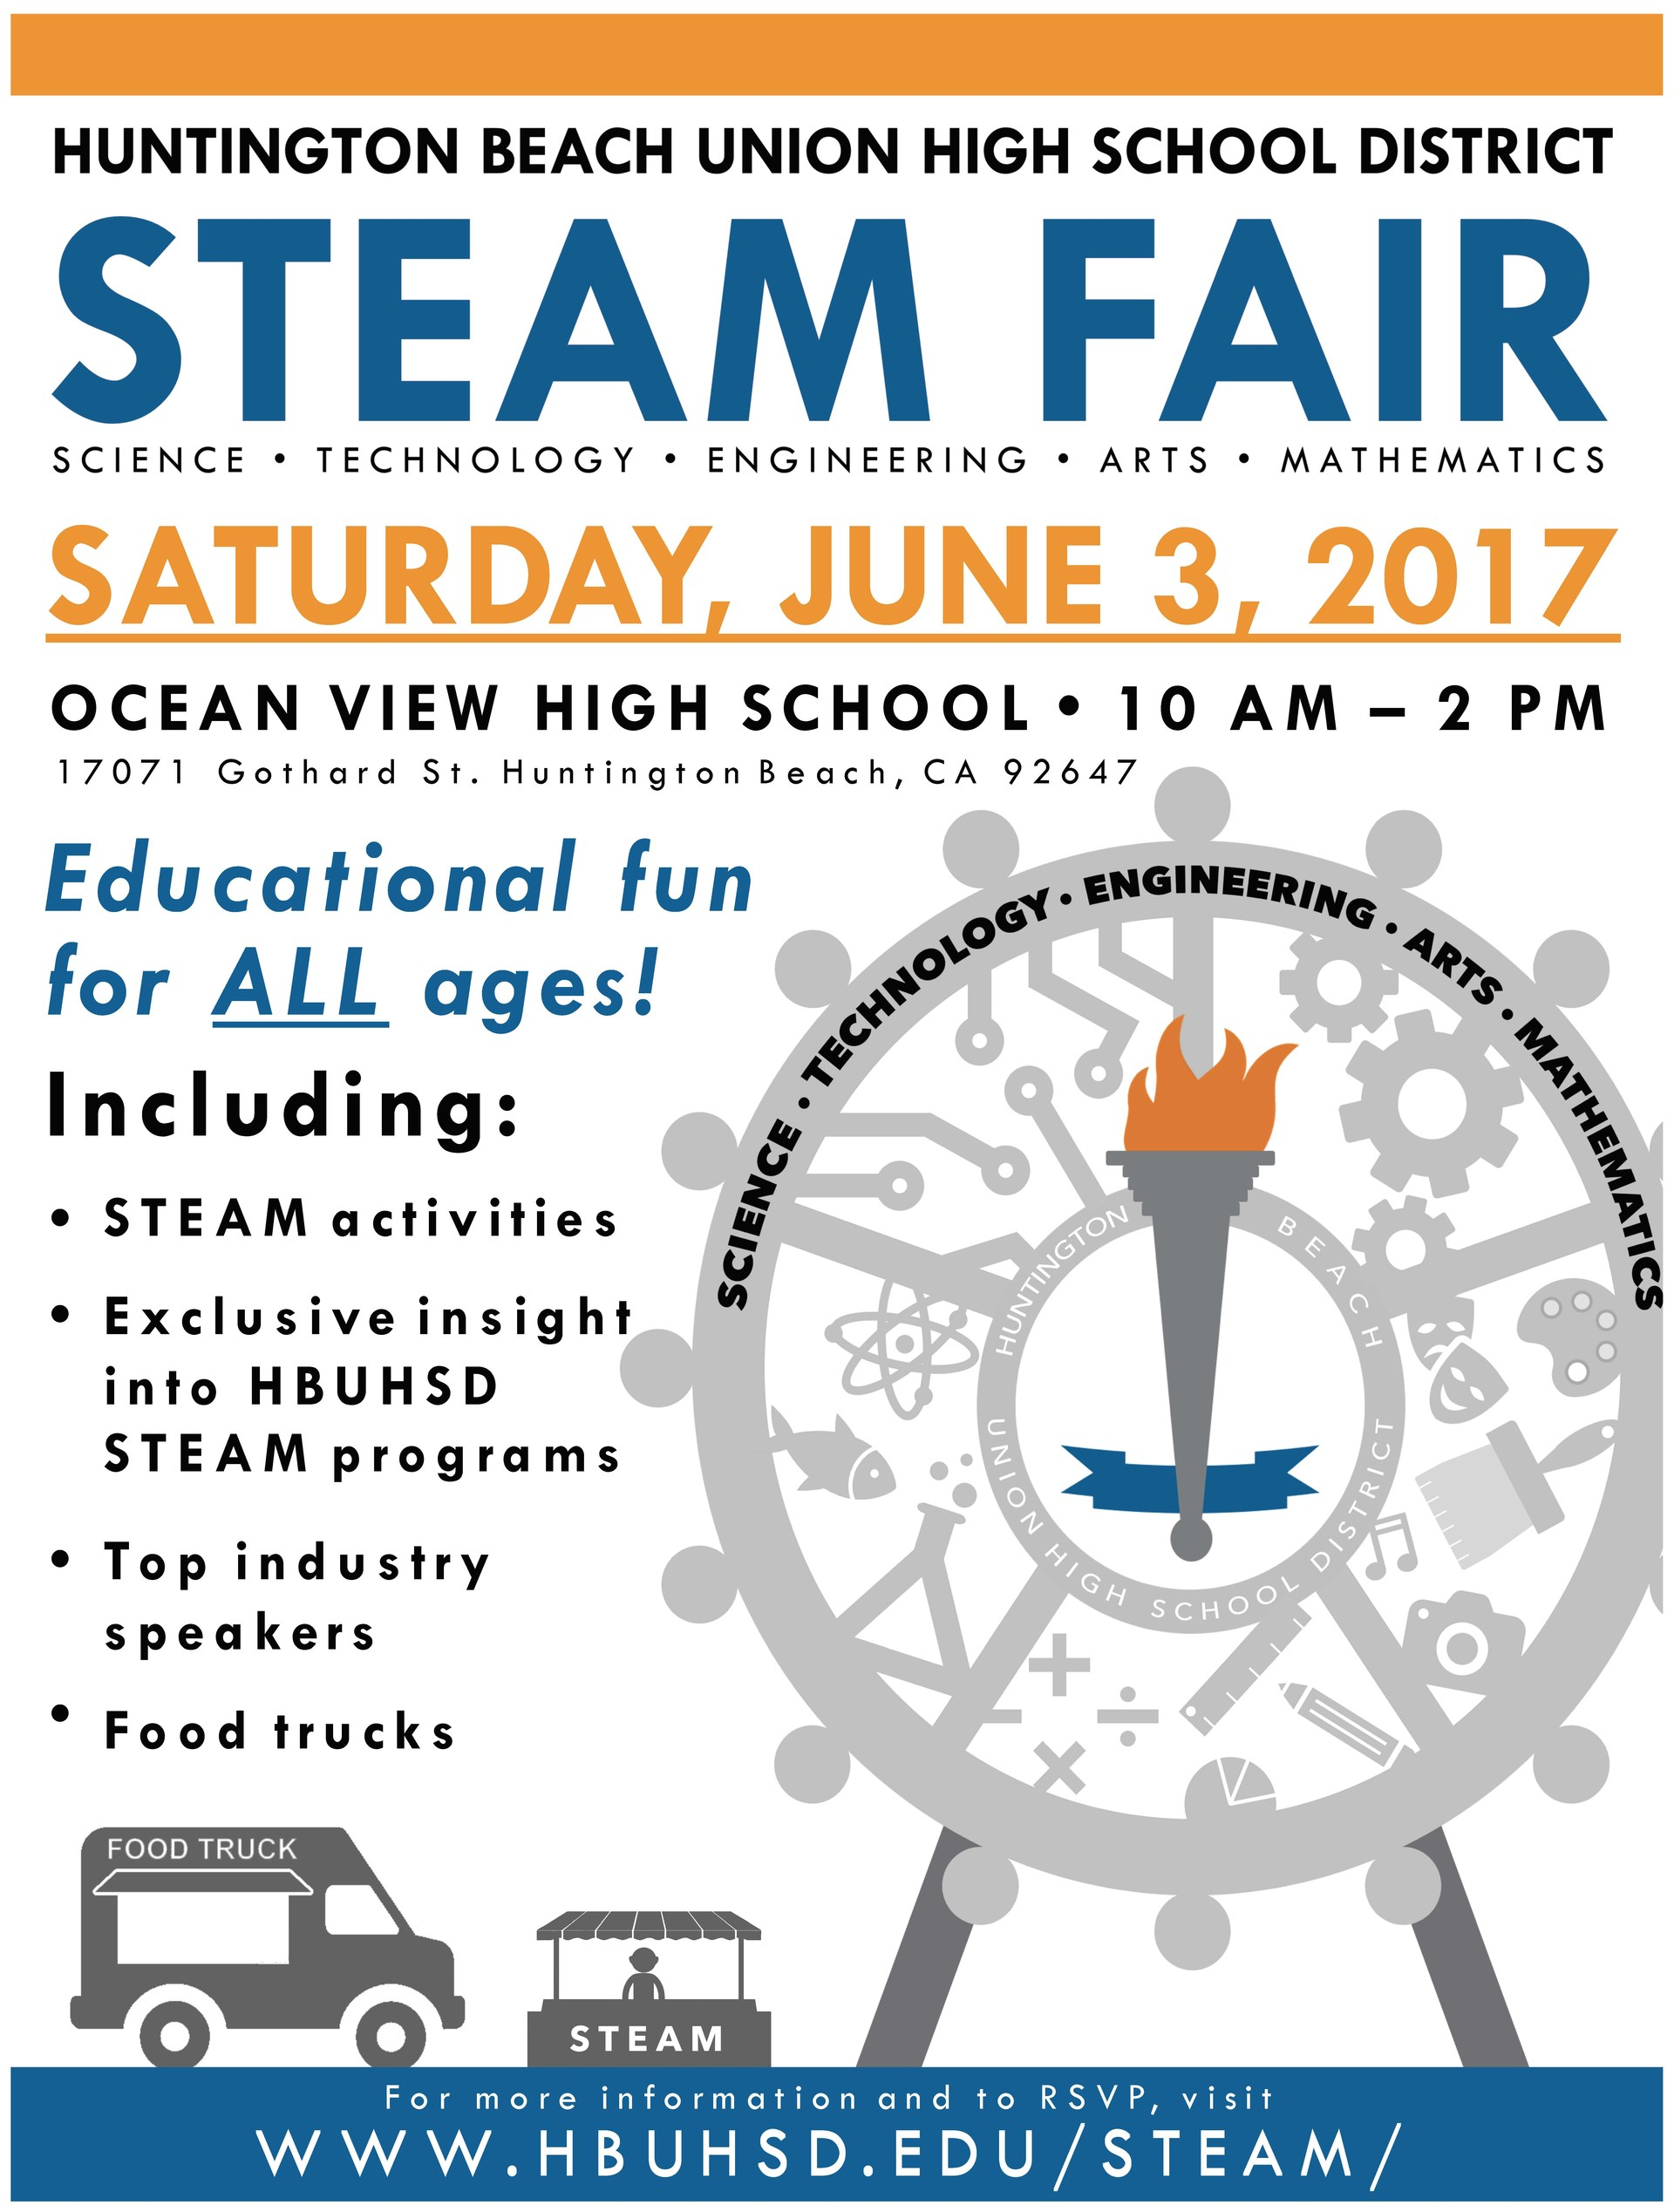 STEAM FAIR flyer.